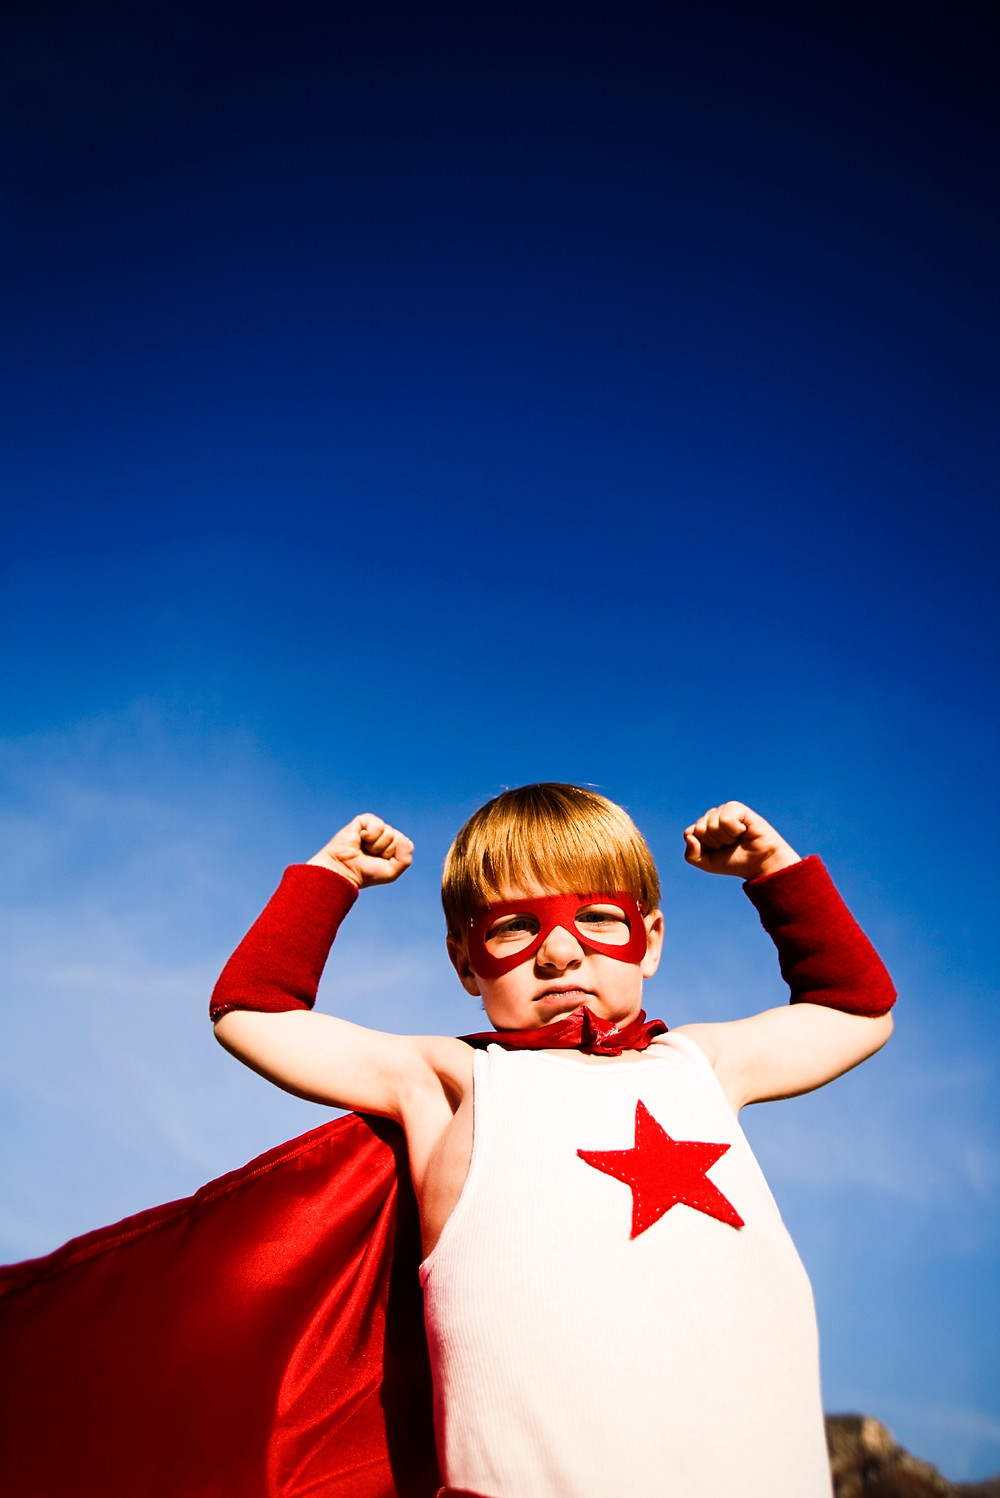 A young child in a red and white superhero outfit, with a cape, holding his arms in the air, flexing muscles.